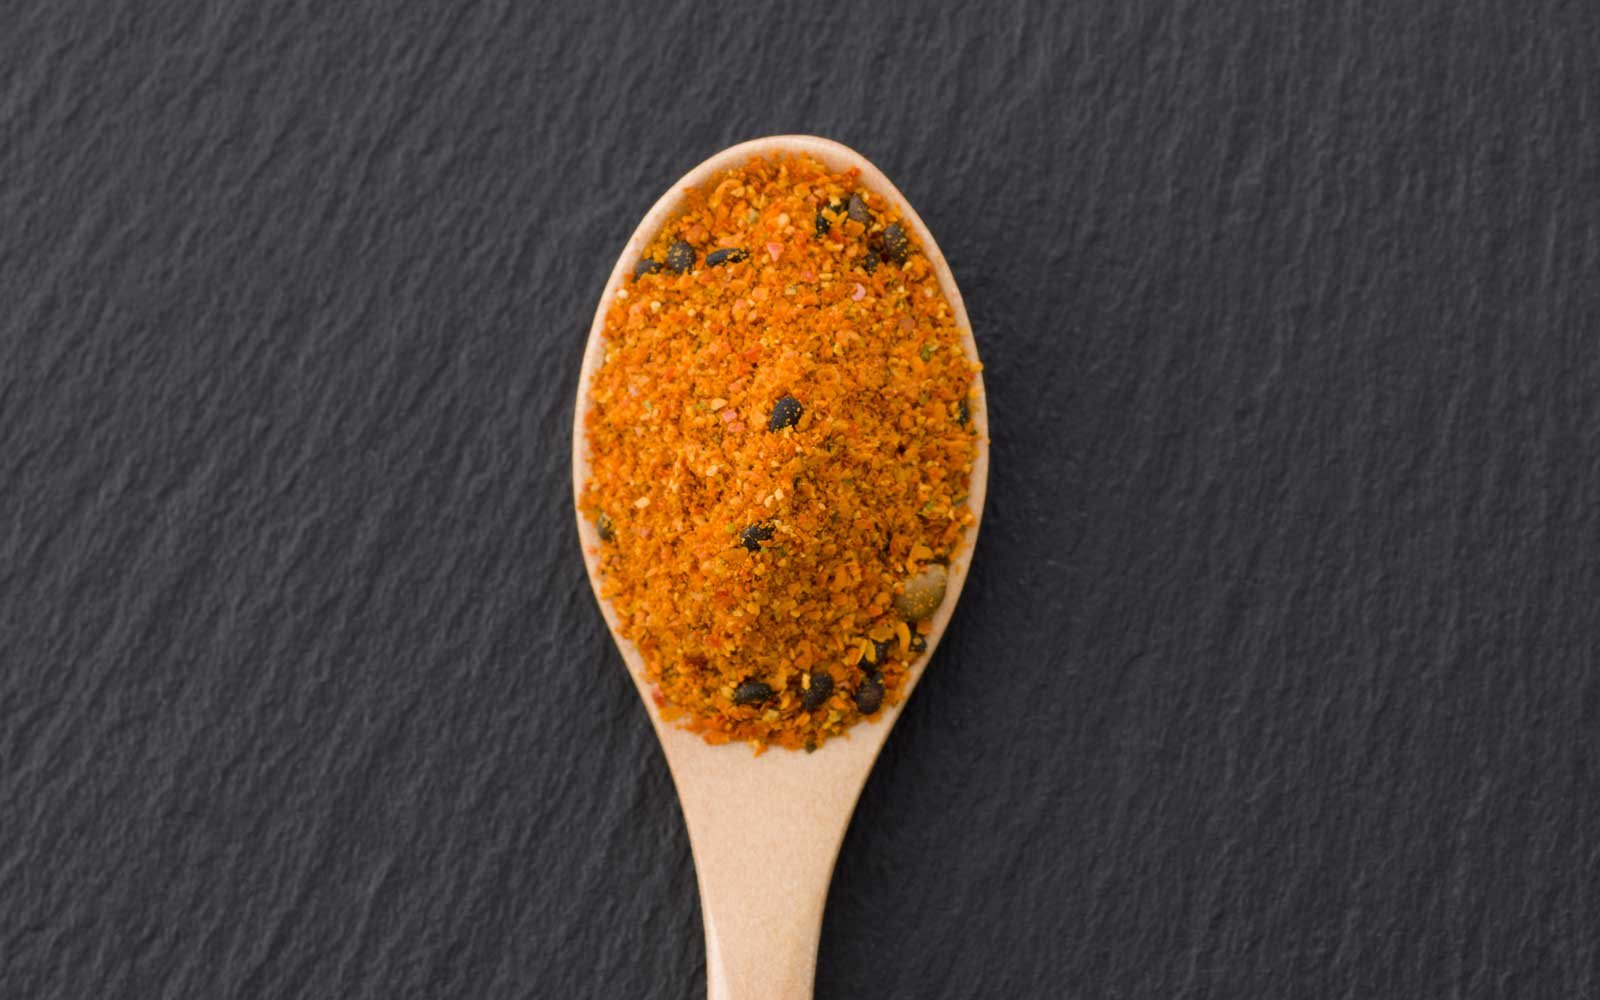 Shichimi pepper in wooden spoon on black plate